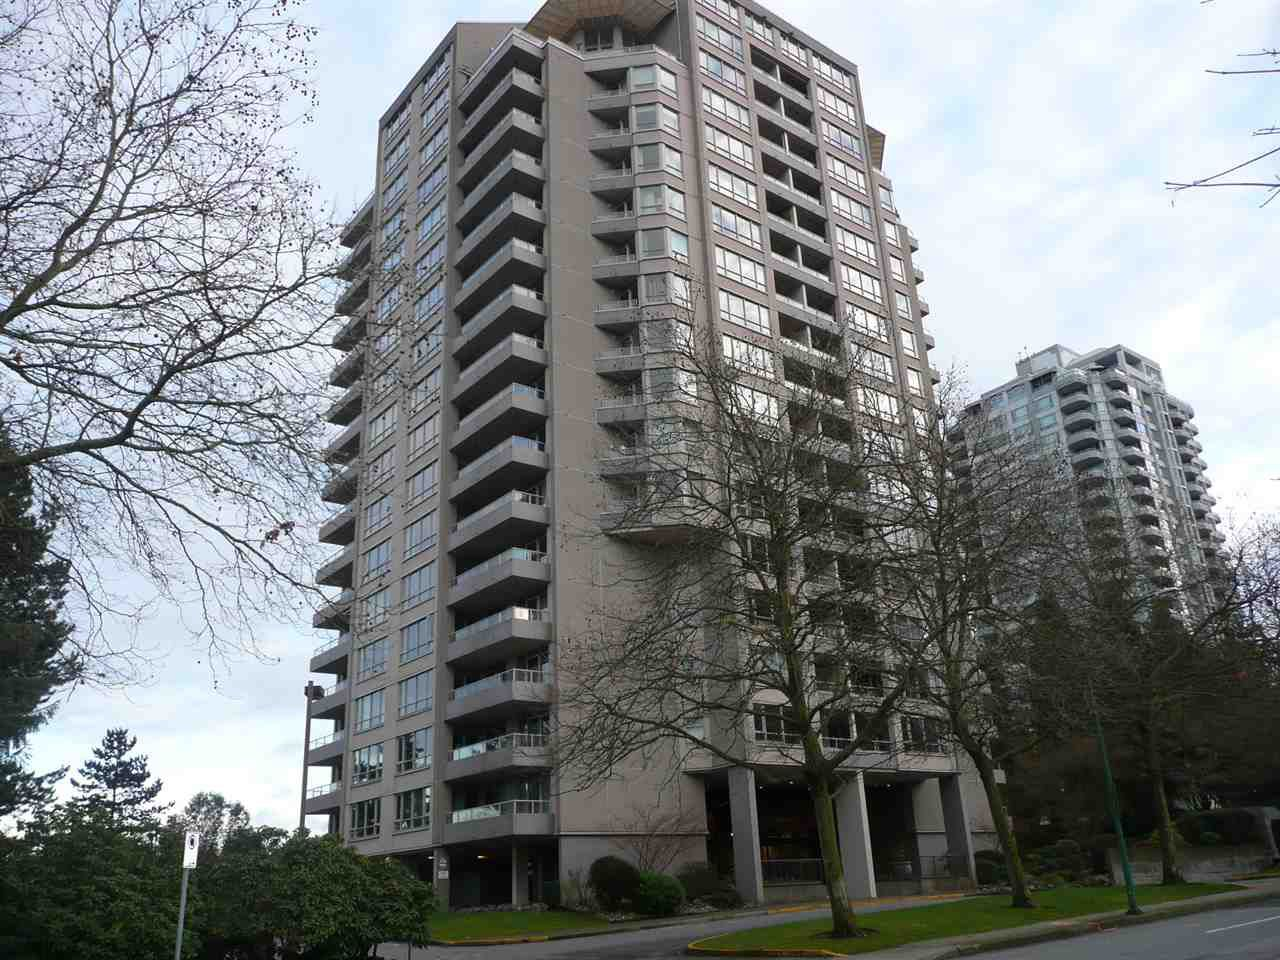 """Main Photo: 904 6070 MCMURRAY Avenue in Burnaby: Forest Glen BS Condo for sale in """"LA MIRAGE I"""" (Burnaby South)  : MLS®# R2326428"""